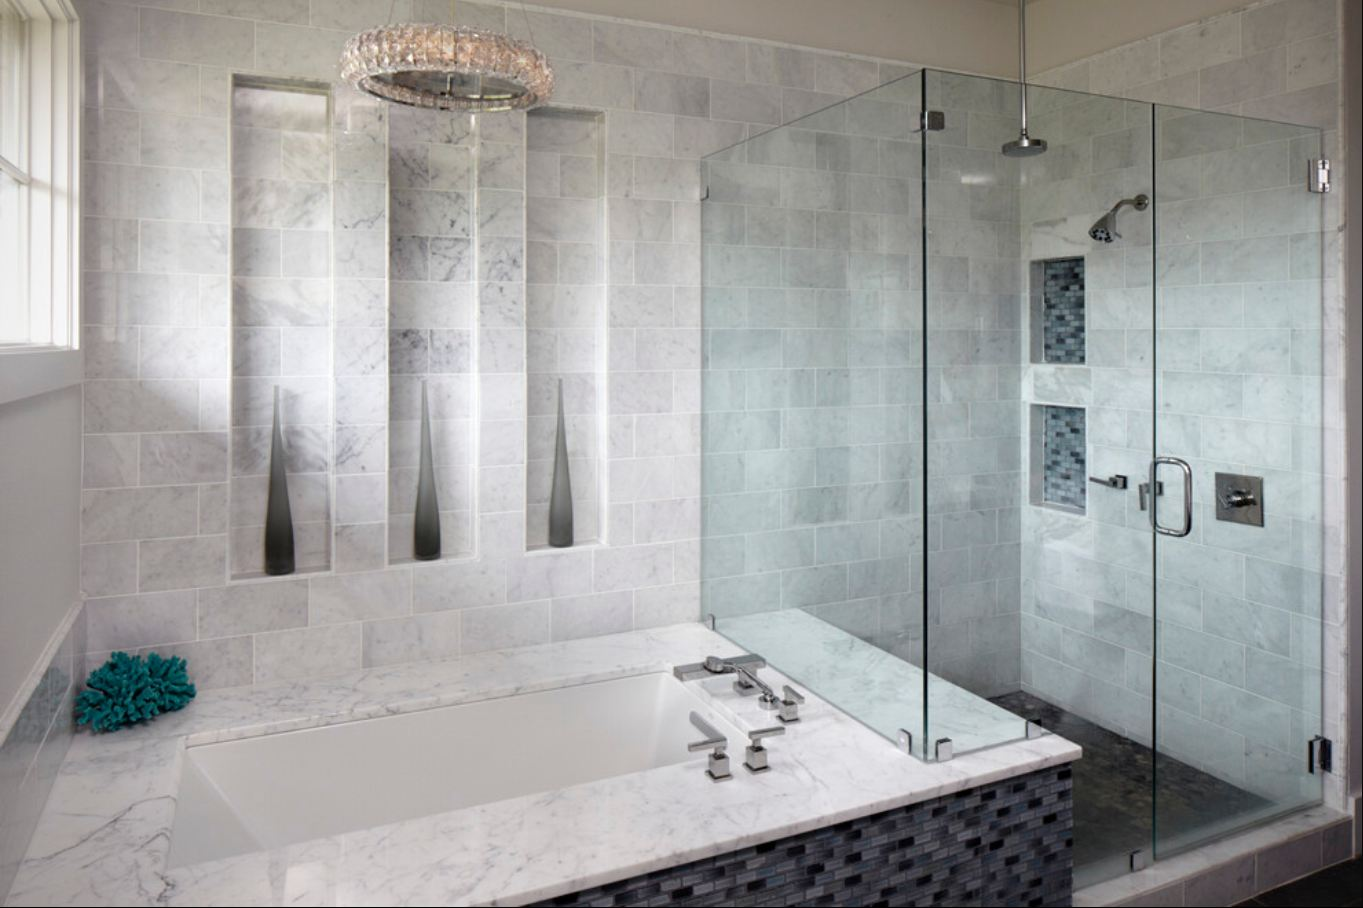 Blue and white bathroom floor tiles -  Antique Marble Bathroom Tile With Bianco Carrara Marble